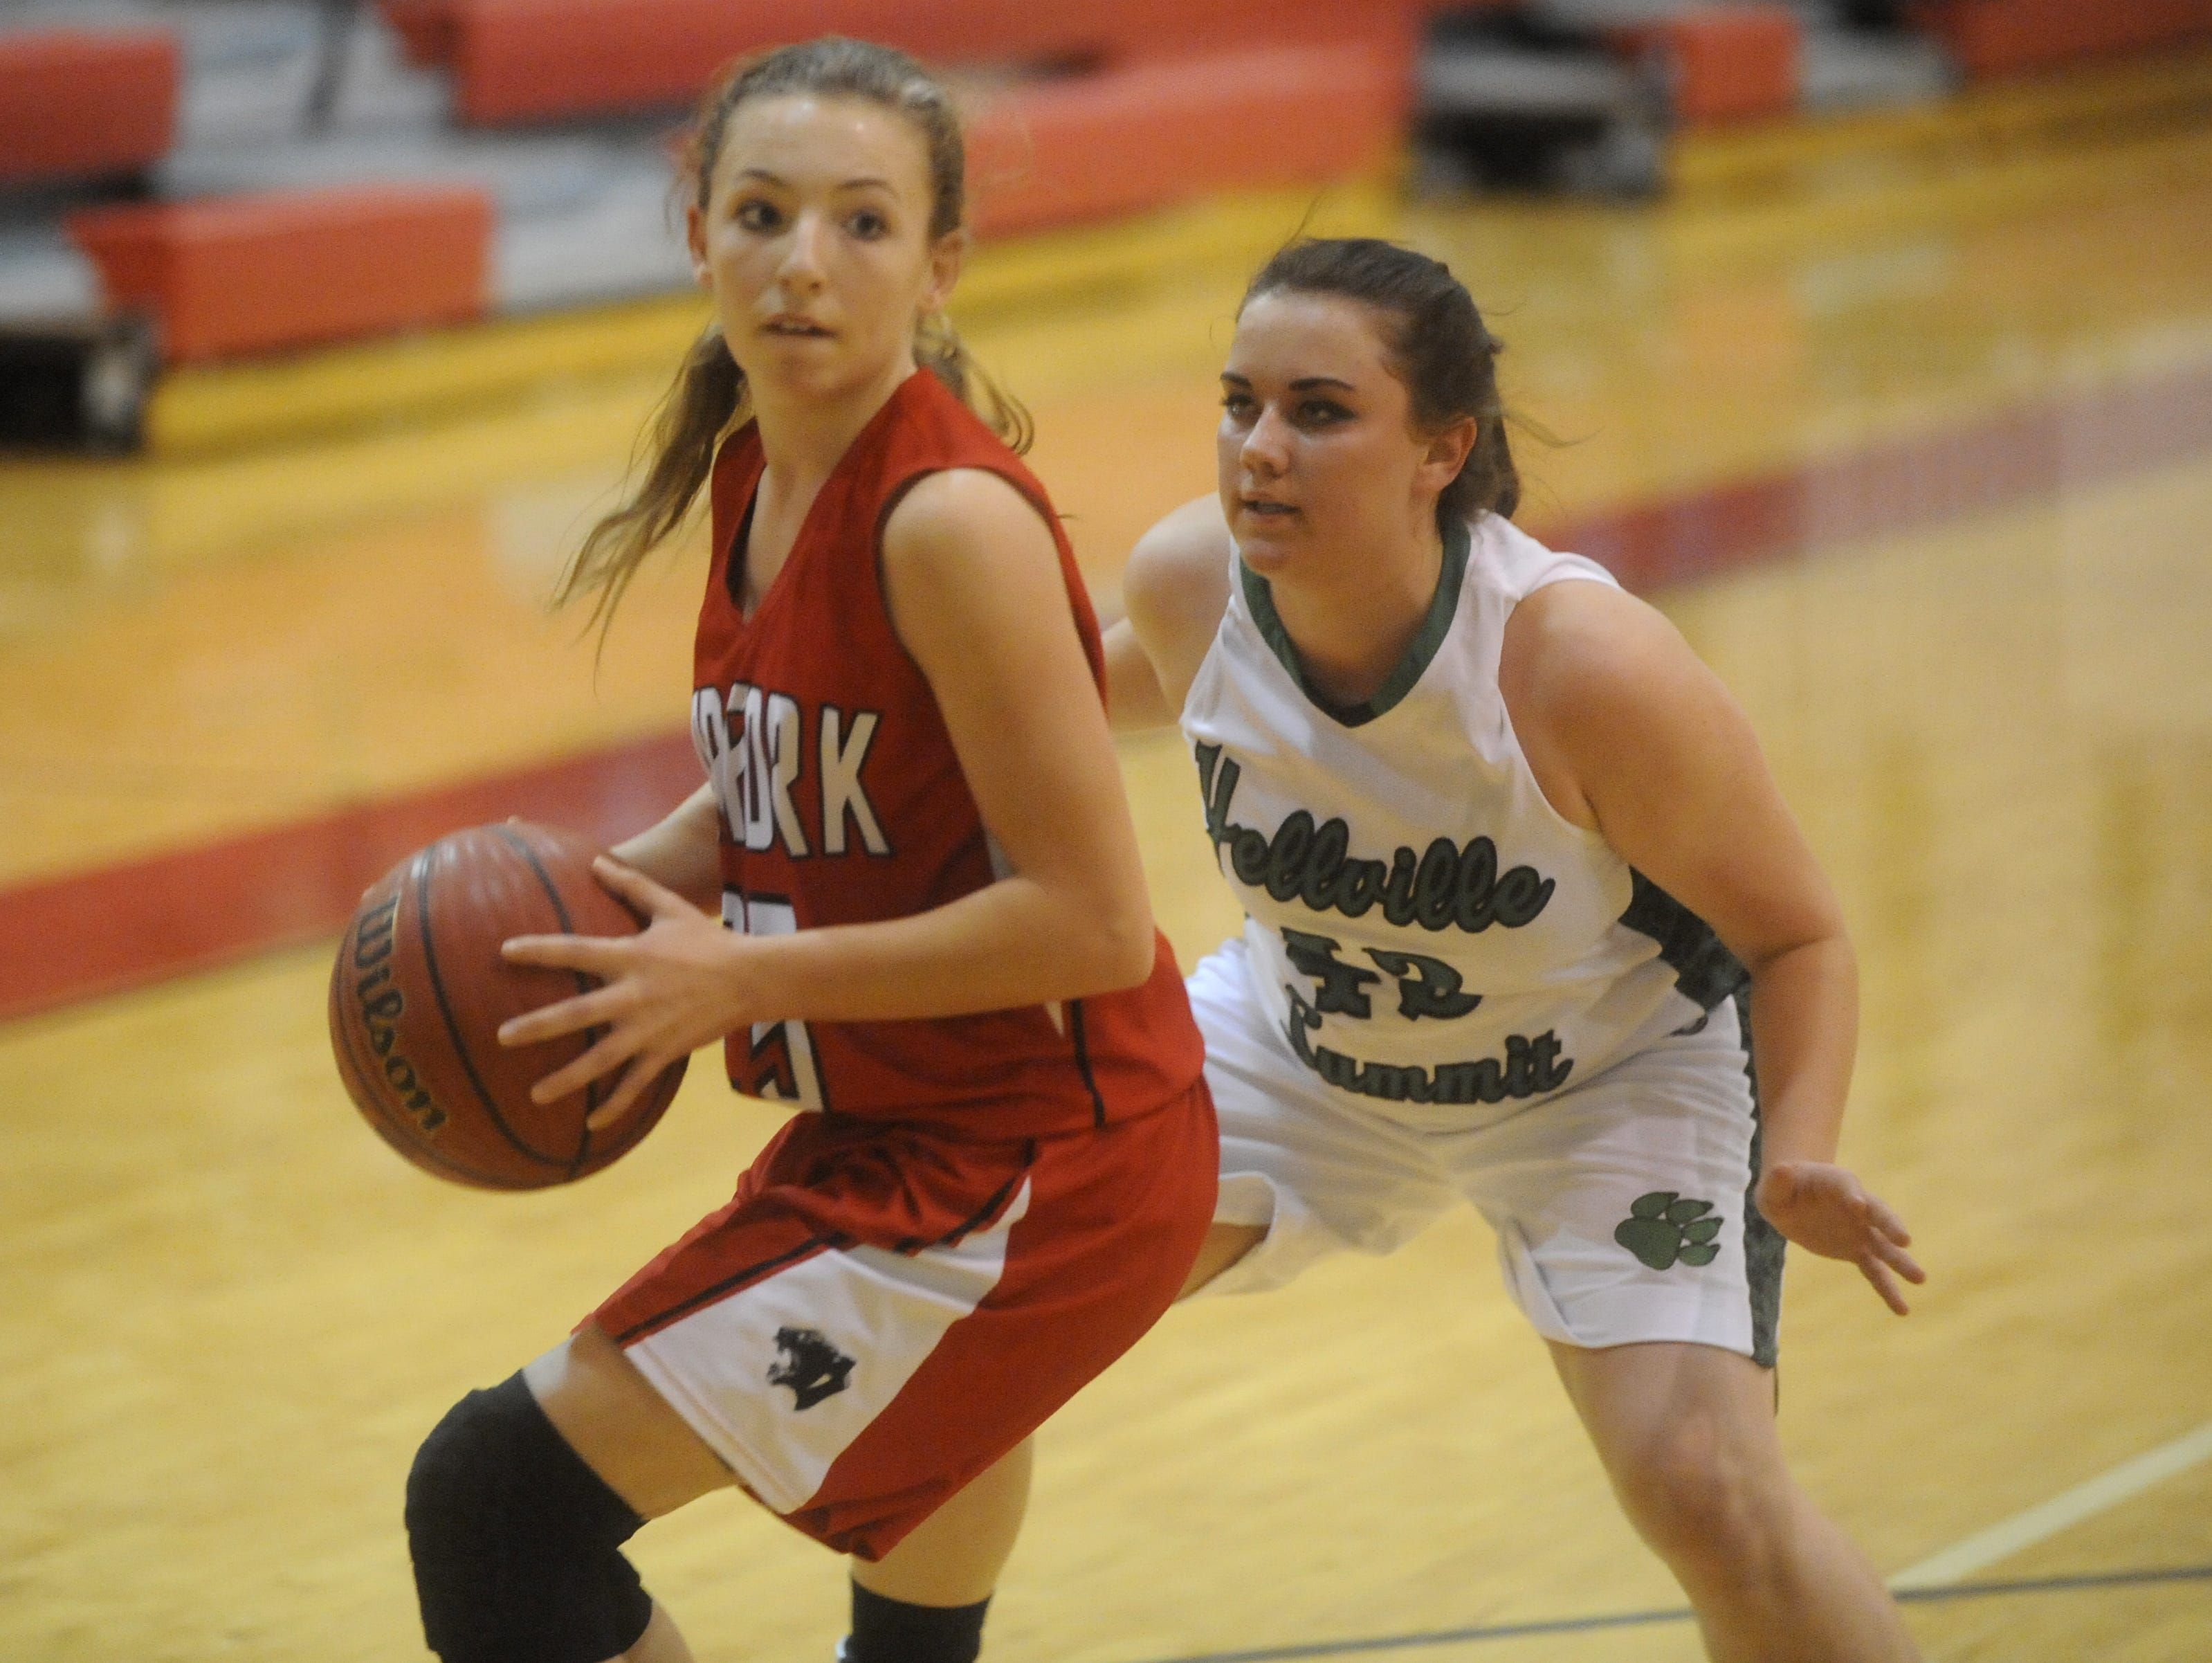 Norfork's Ivy McGowan is defended by Yellville-Summit's Kira Gentry-Cape.